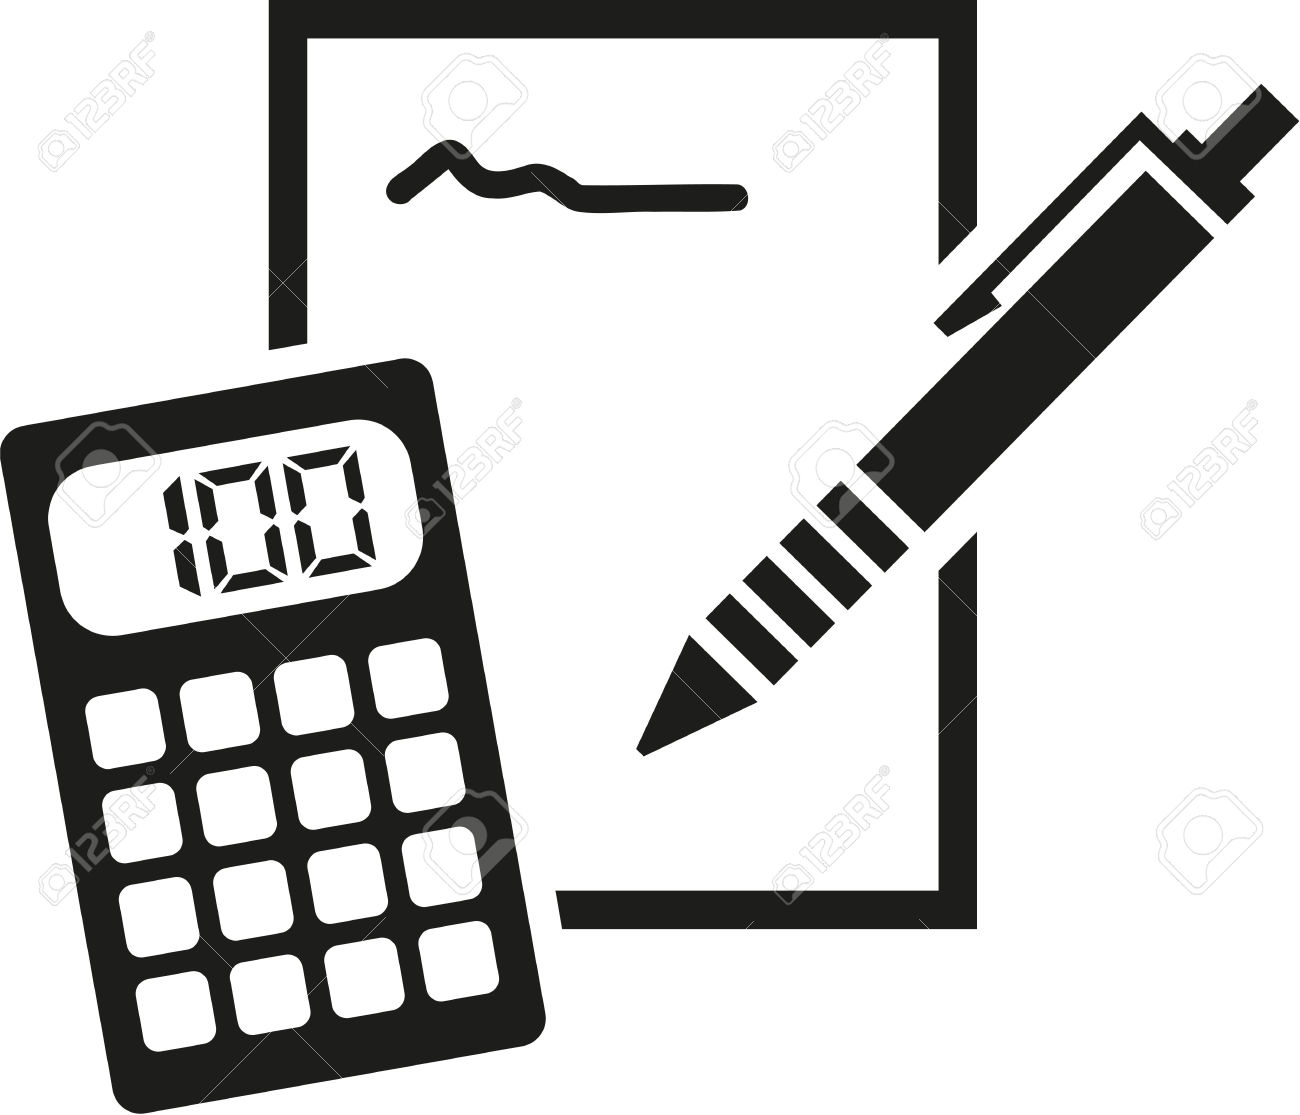 Calculator clipart calculater. Black and white free